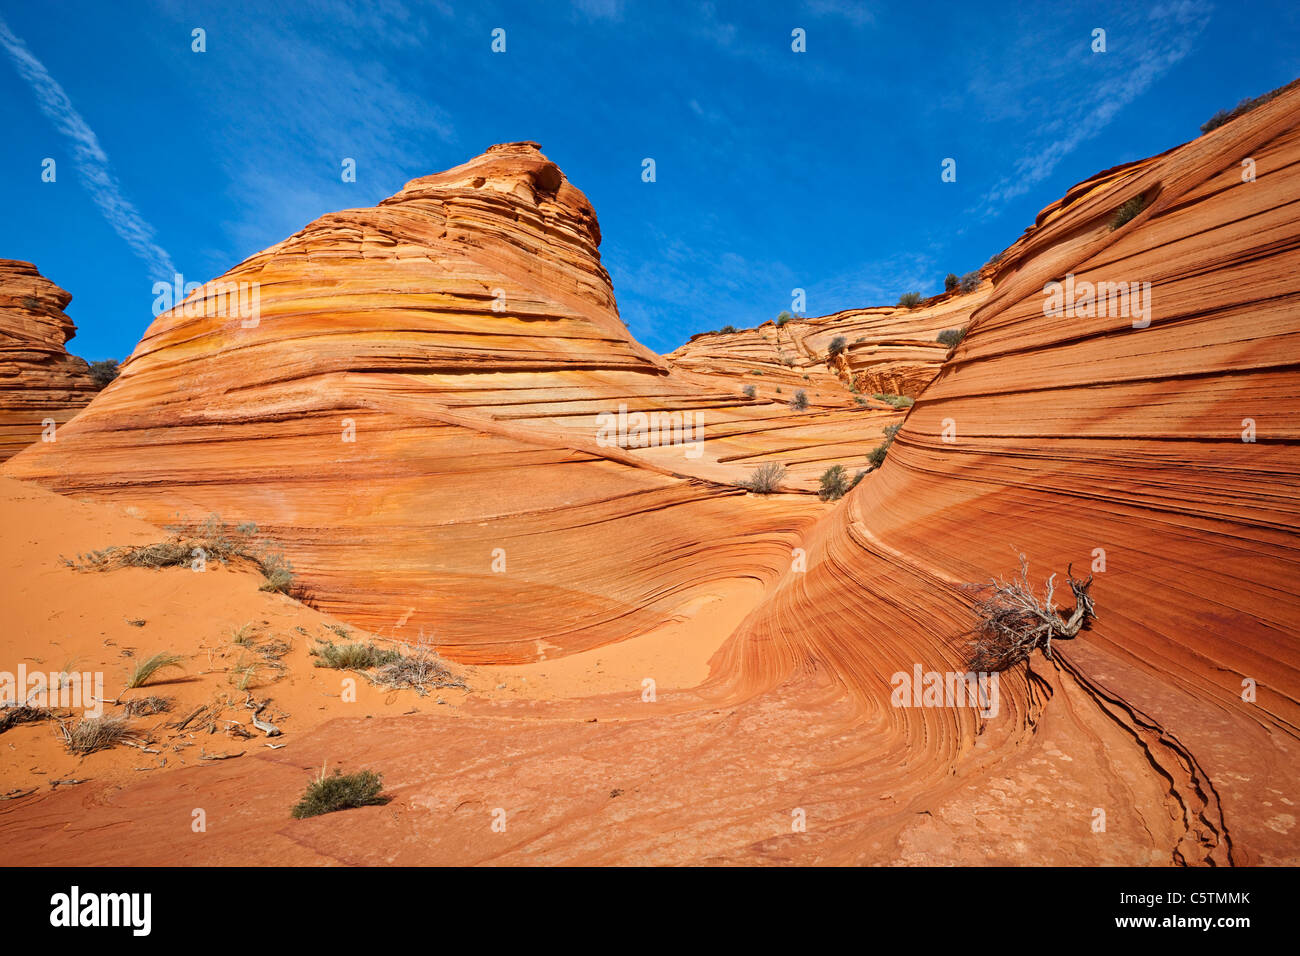 USA, Utah, Coyote Buttes, Paria Canyon, Rock formations Photo Stock